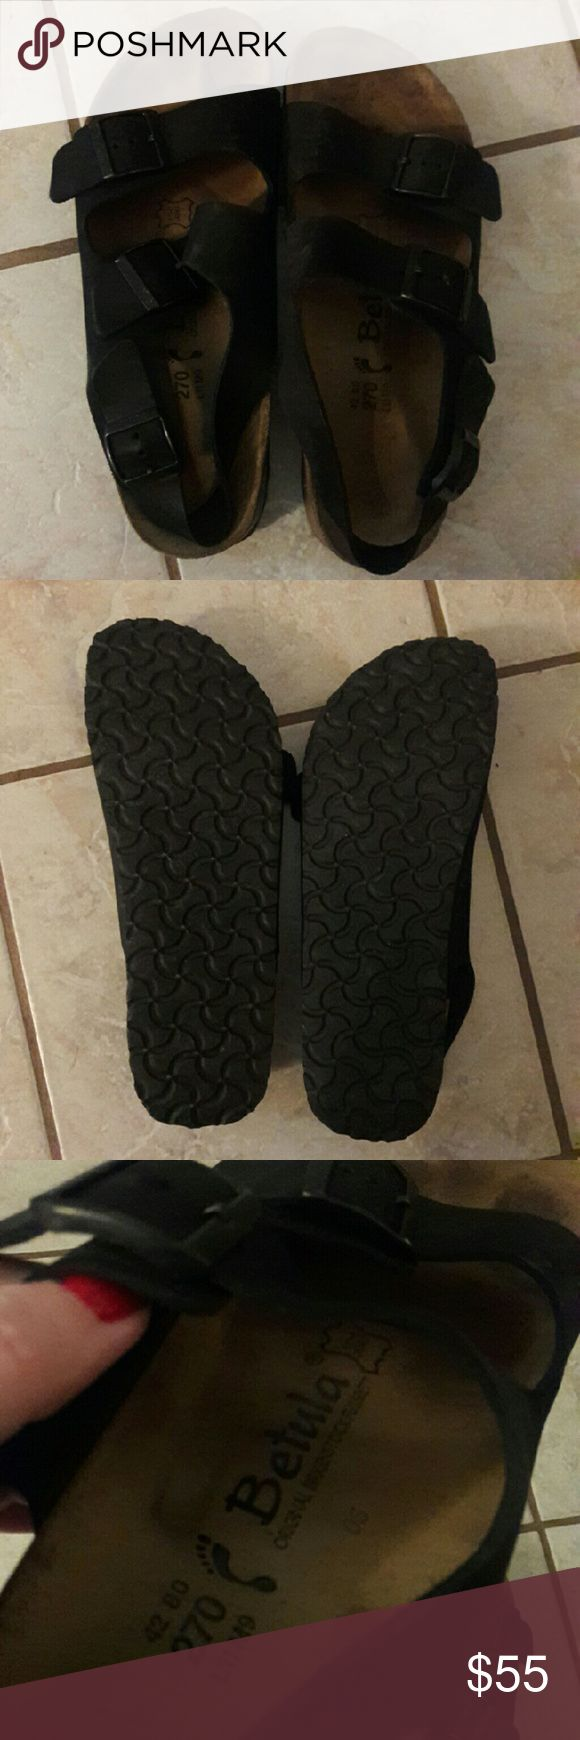 Birkenstock - Betula sandals Excellent used condition. I bought these but never wear them and now I'm clearing out! They are a size 11 women's, Birkenstock size 42. Very comfortable! Real leather straps. From a smoke and pet free home. Fast shipping! Birkenstock Shoes Sandals